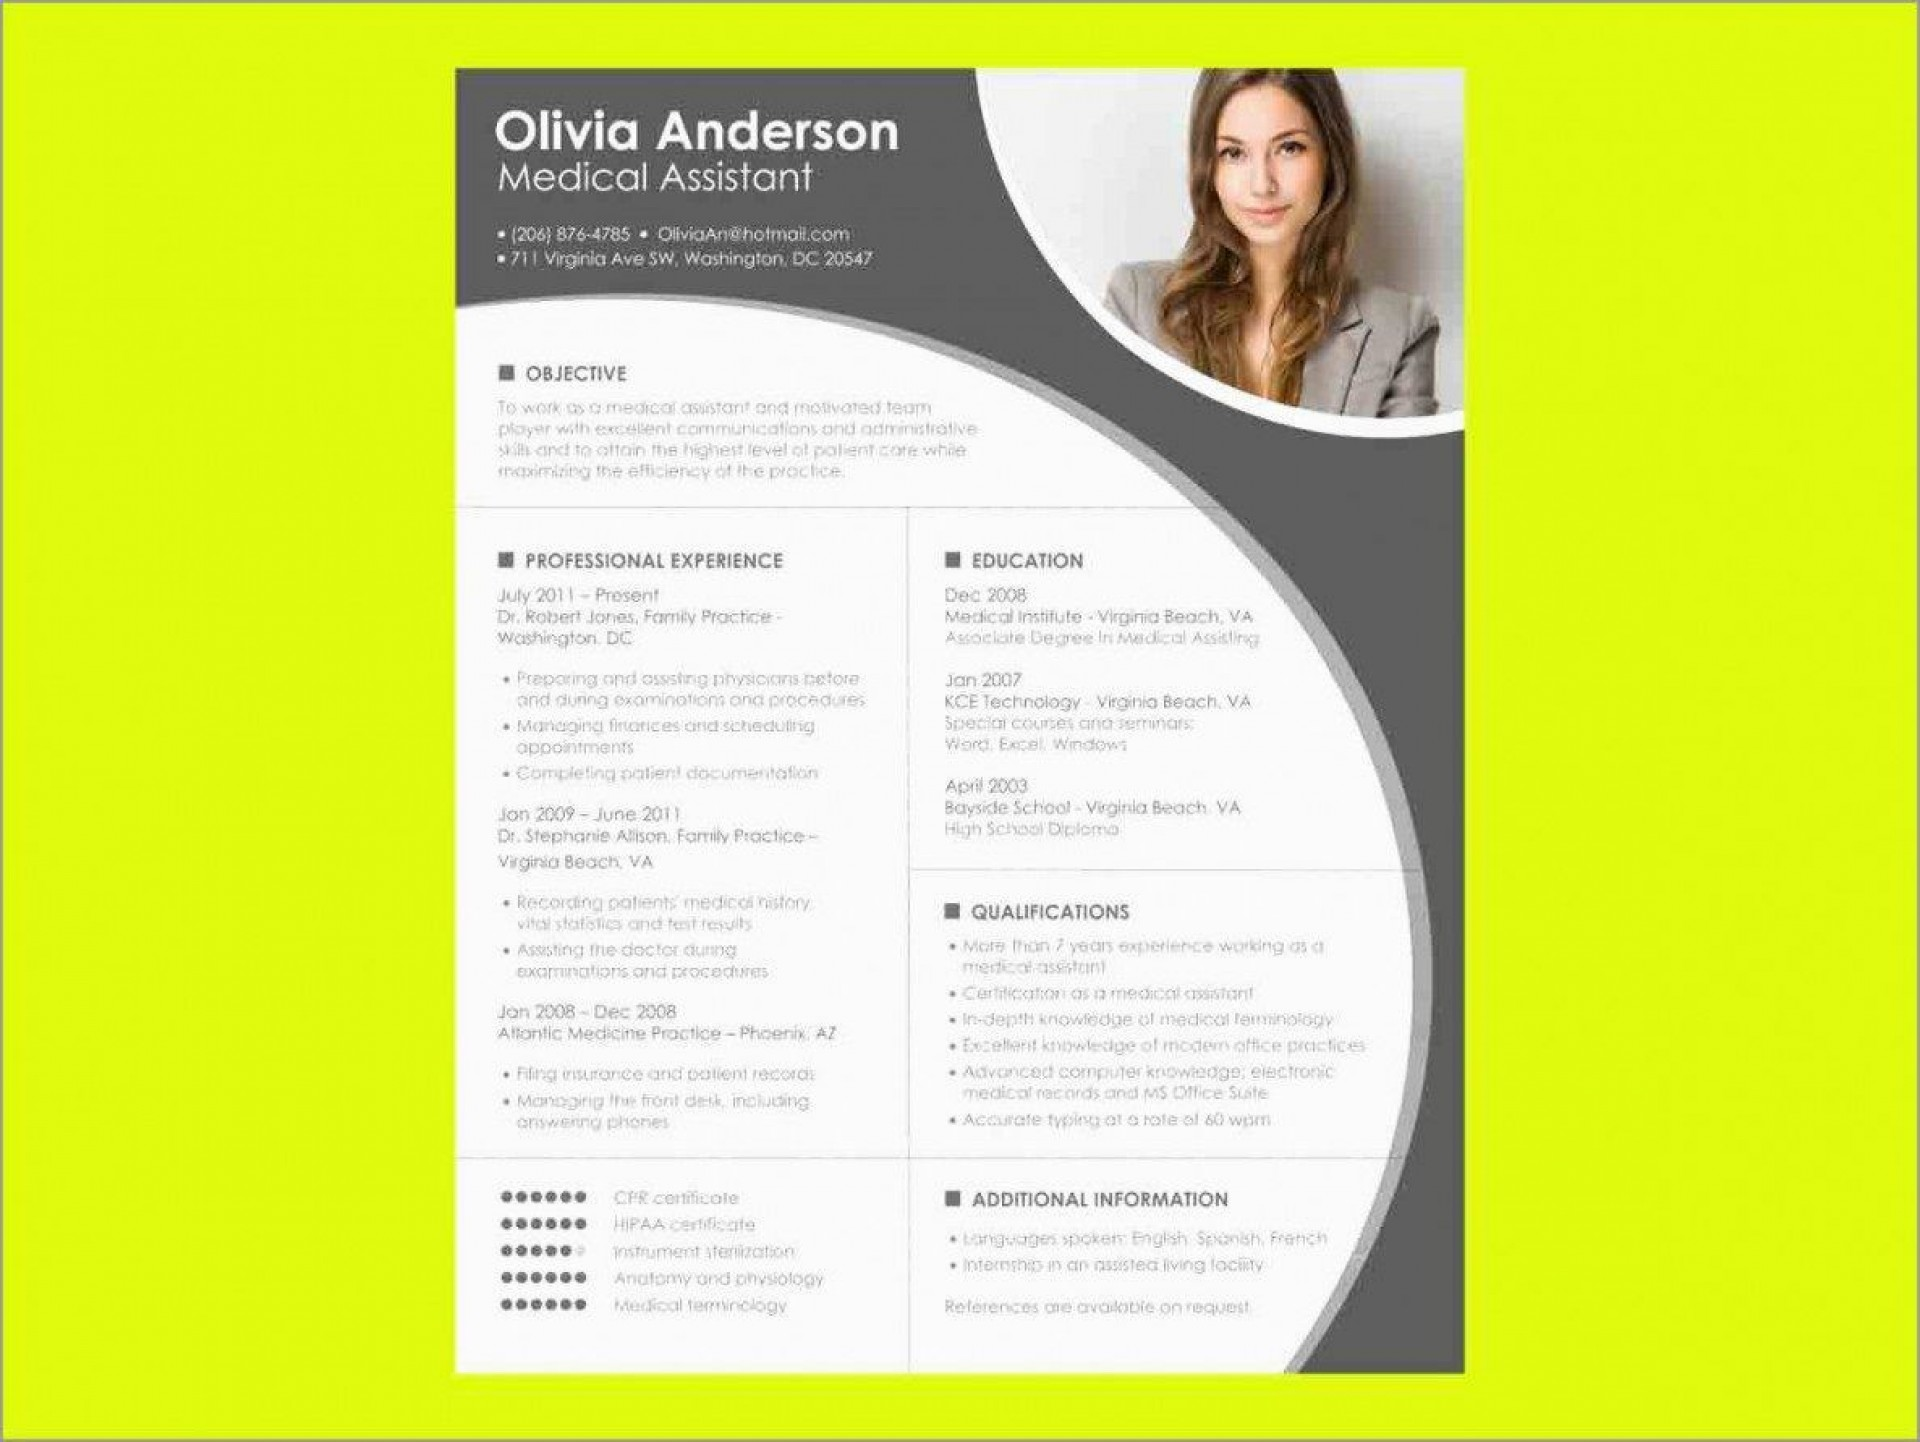 000 Formidable Download Resume Template Word 2007 Inspiration 1920